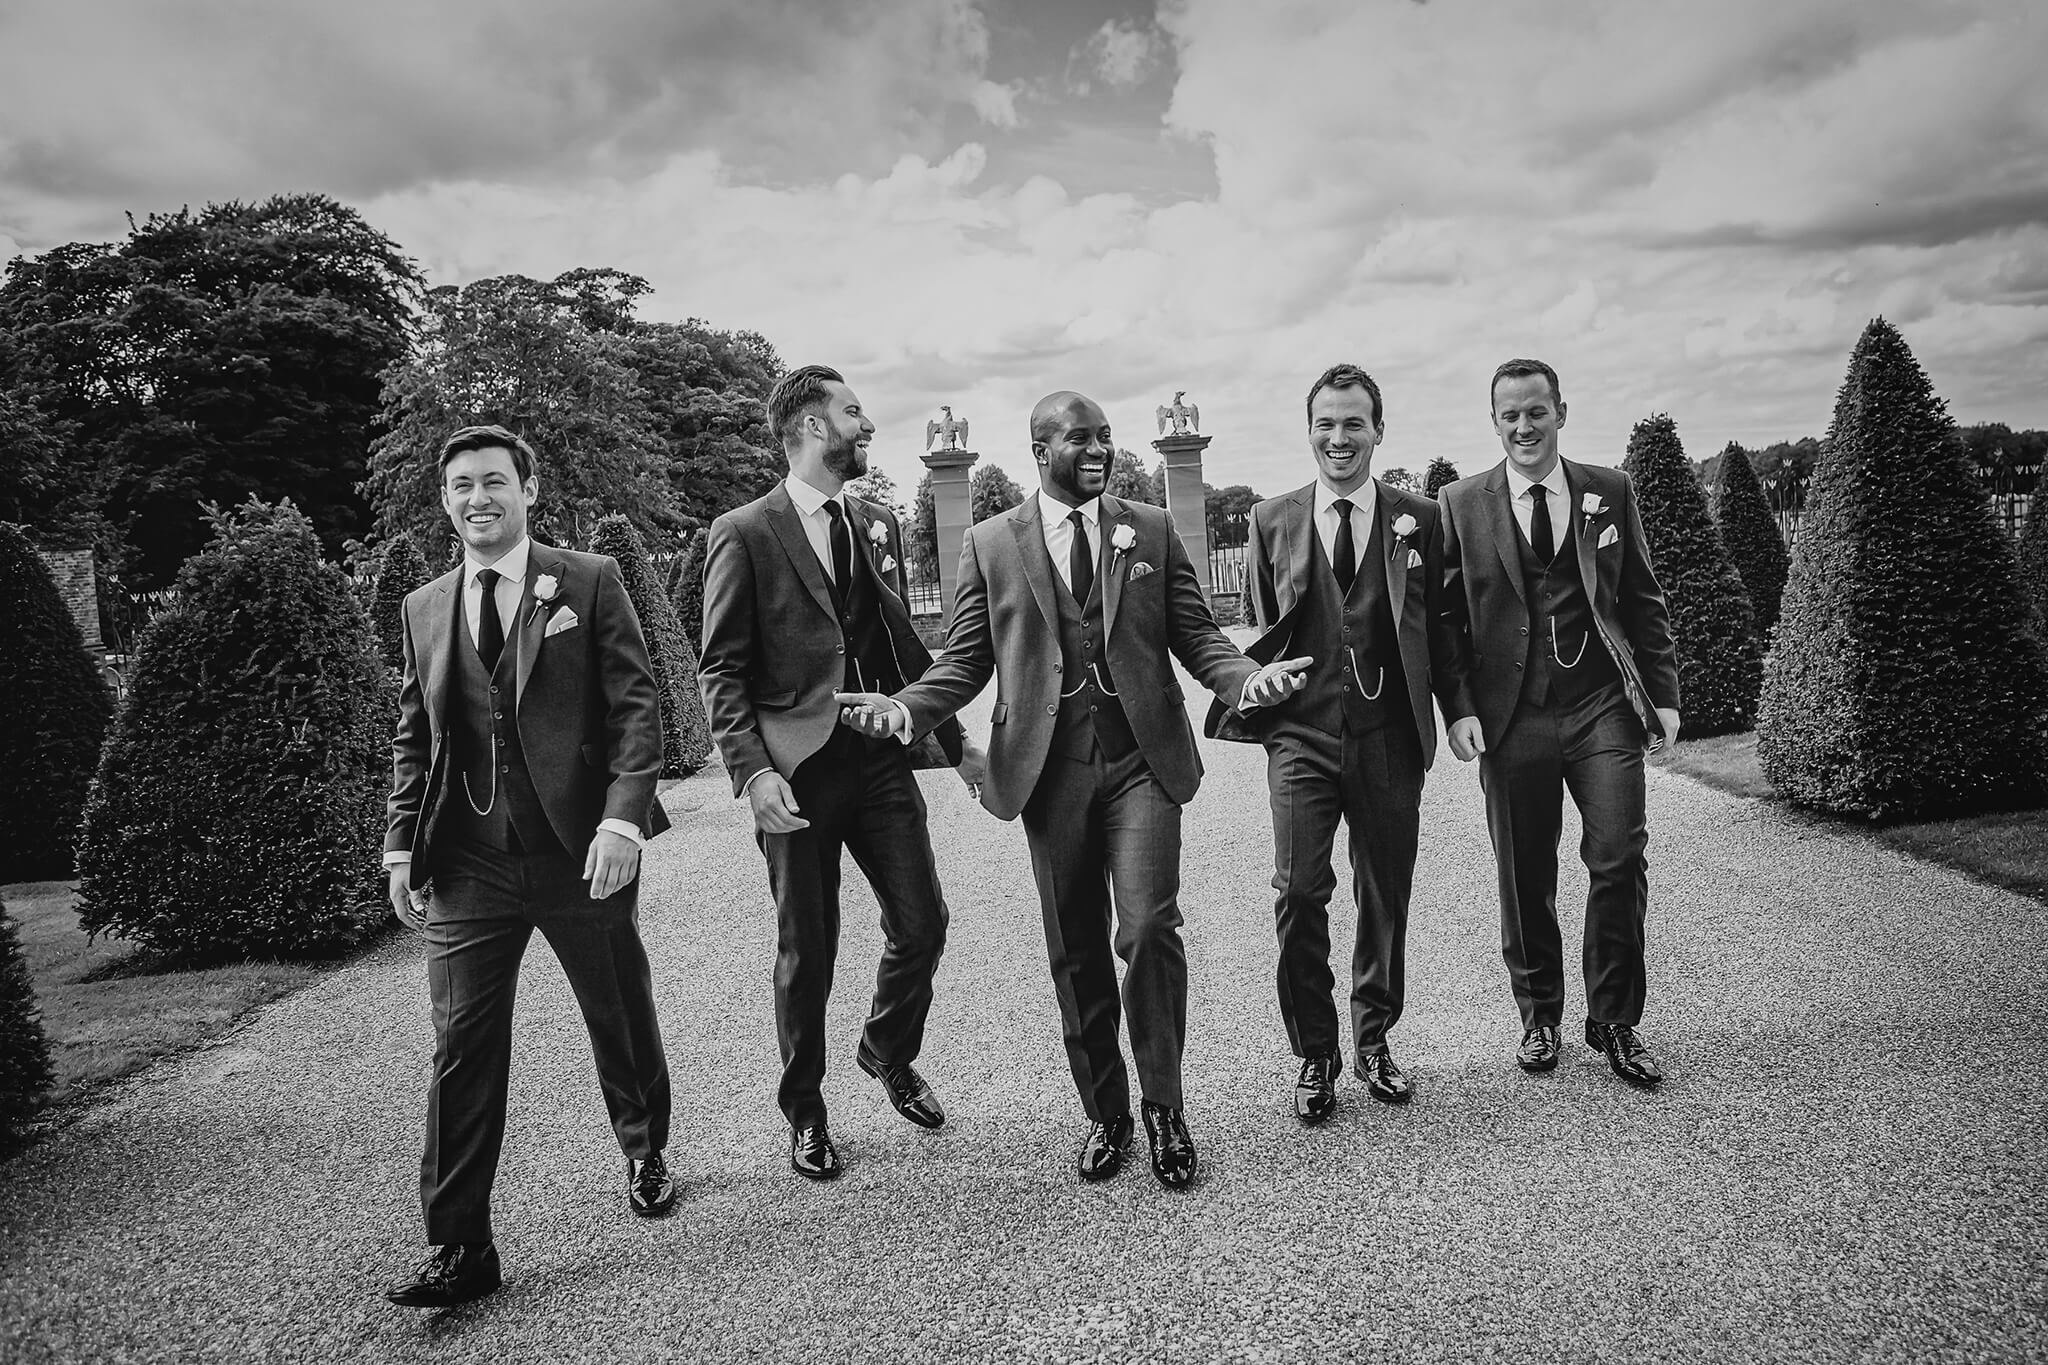 knowsley-hall-wedding-stanbury-photography-010